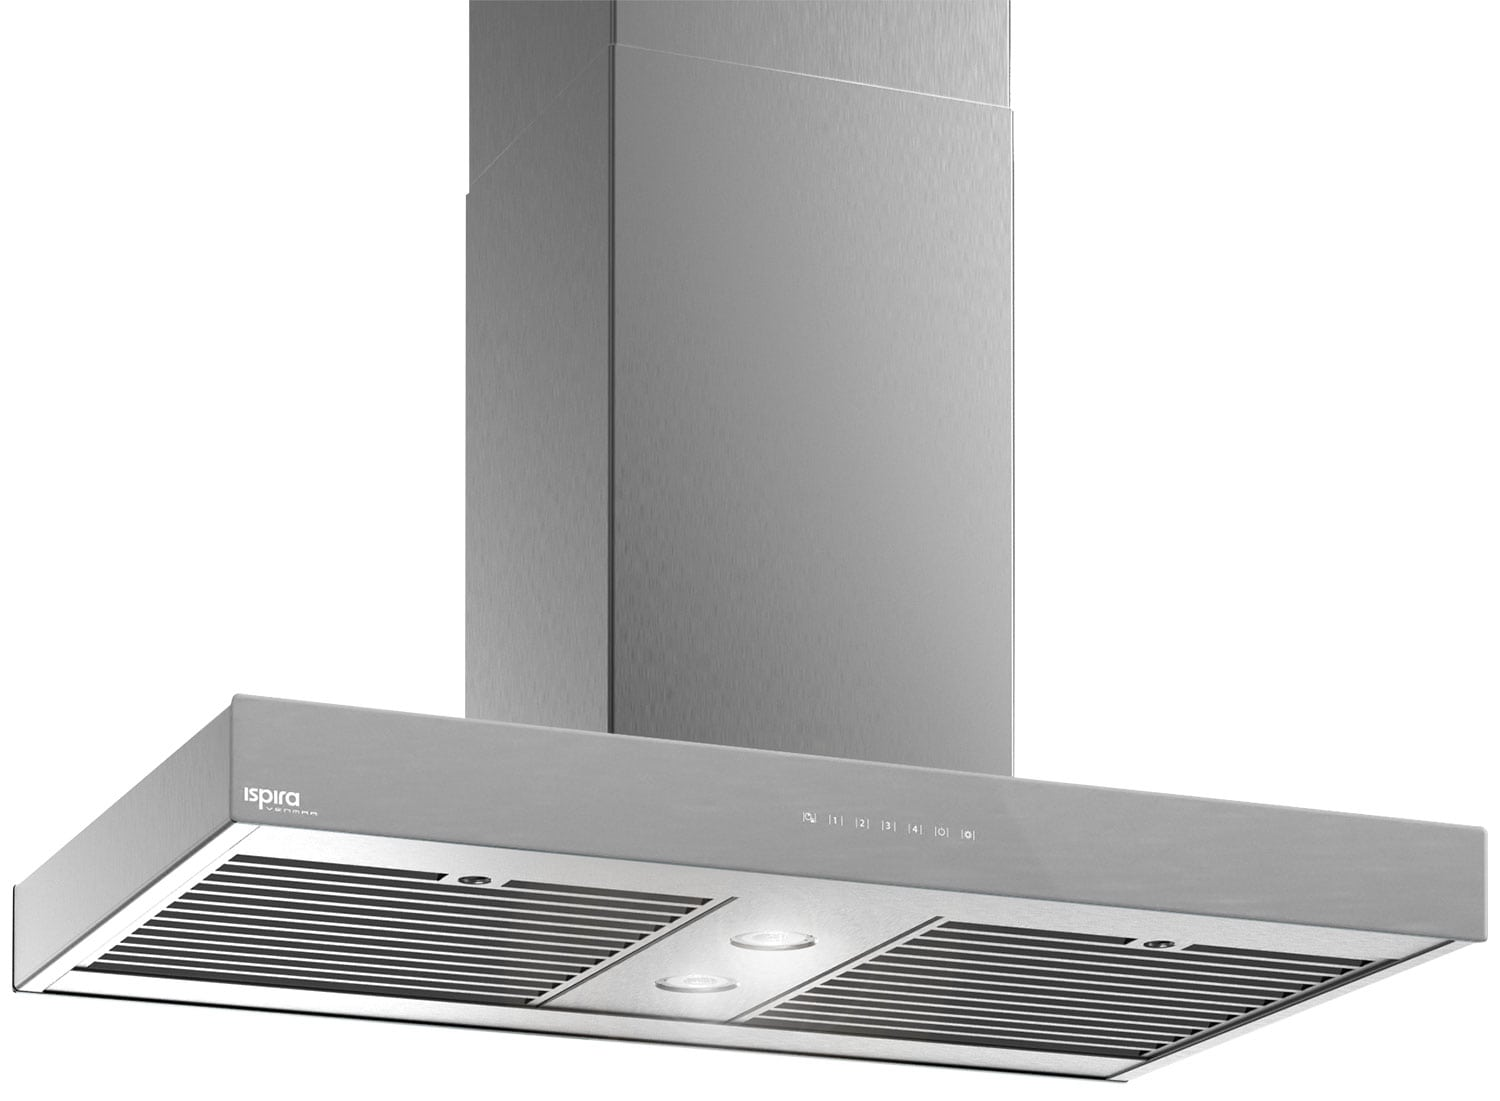 "Venmar Ispira 36"" Island Range Hood – Brushed Grey Panel IS70036SS"